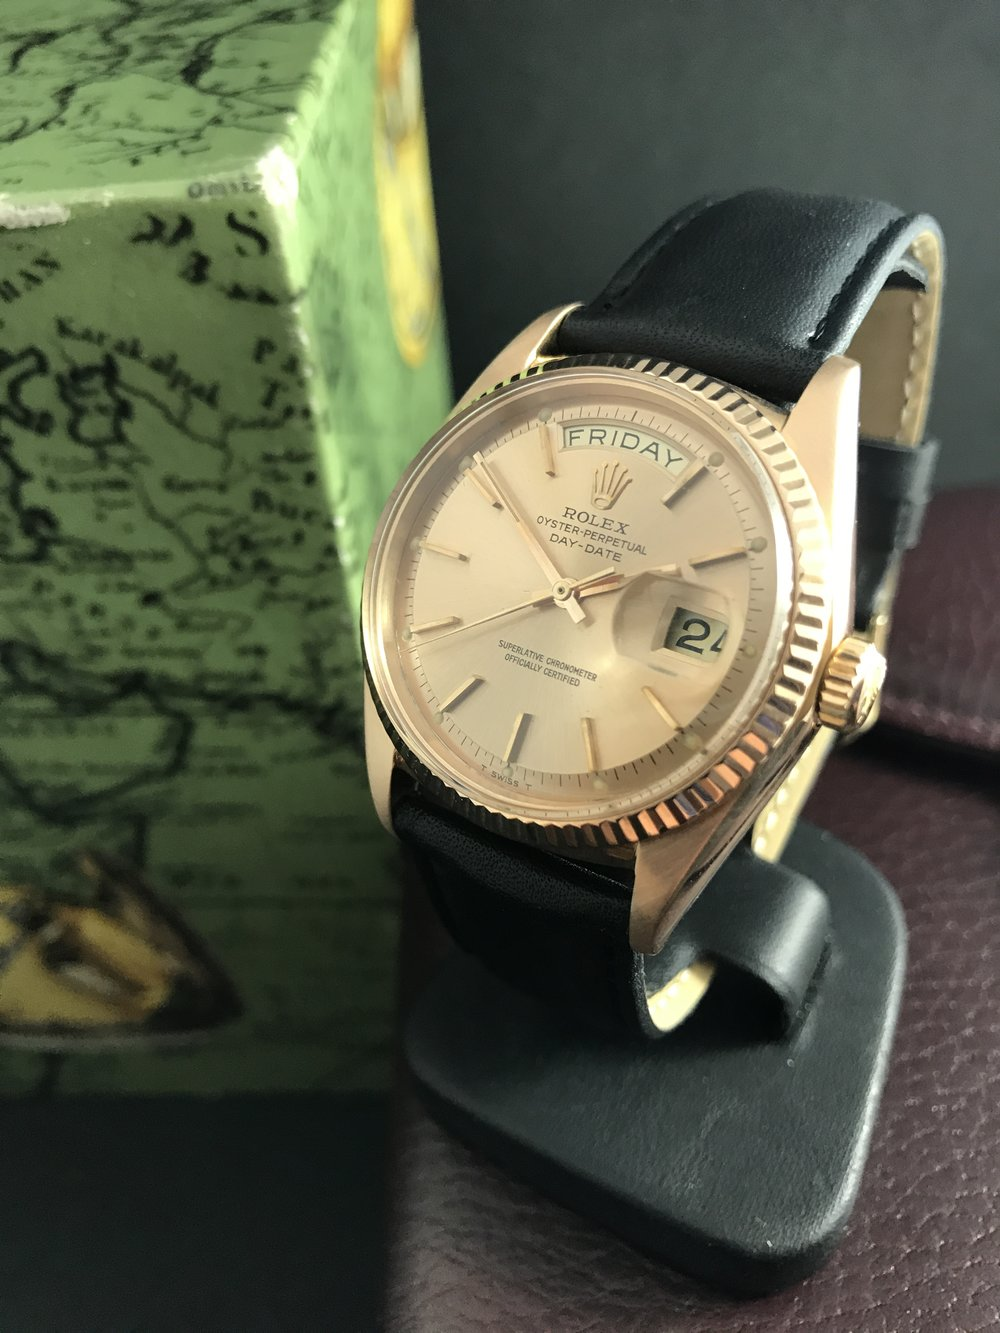 Rare rose gold case. Very good condition for 18K gold of it's age.